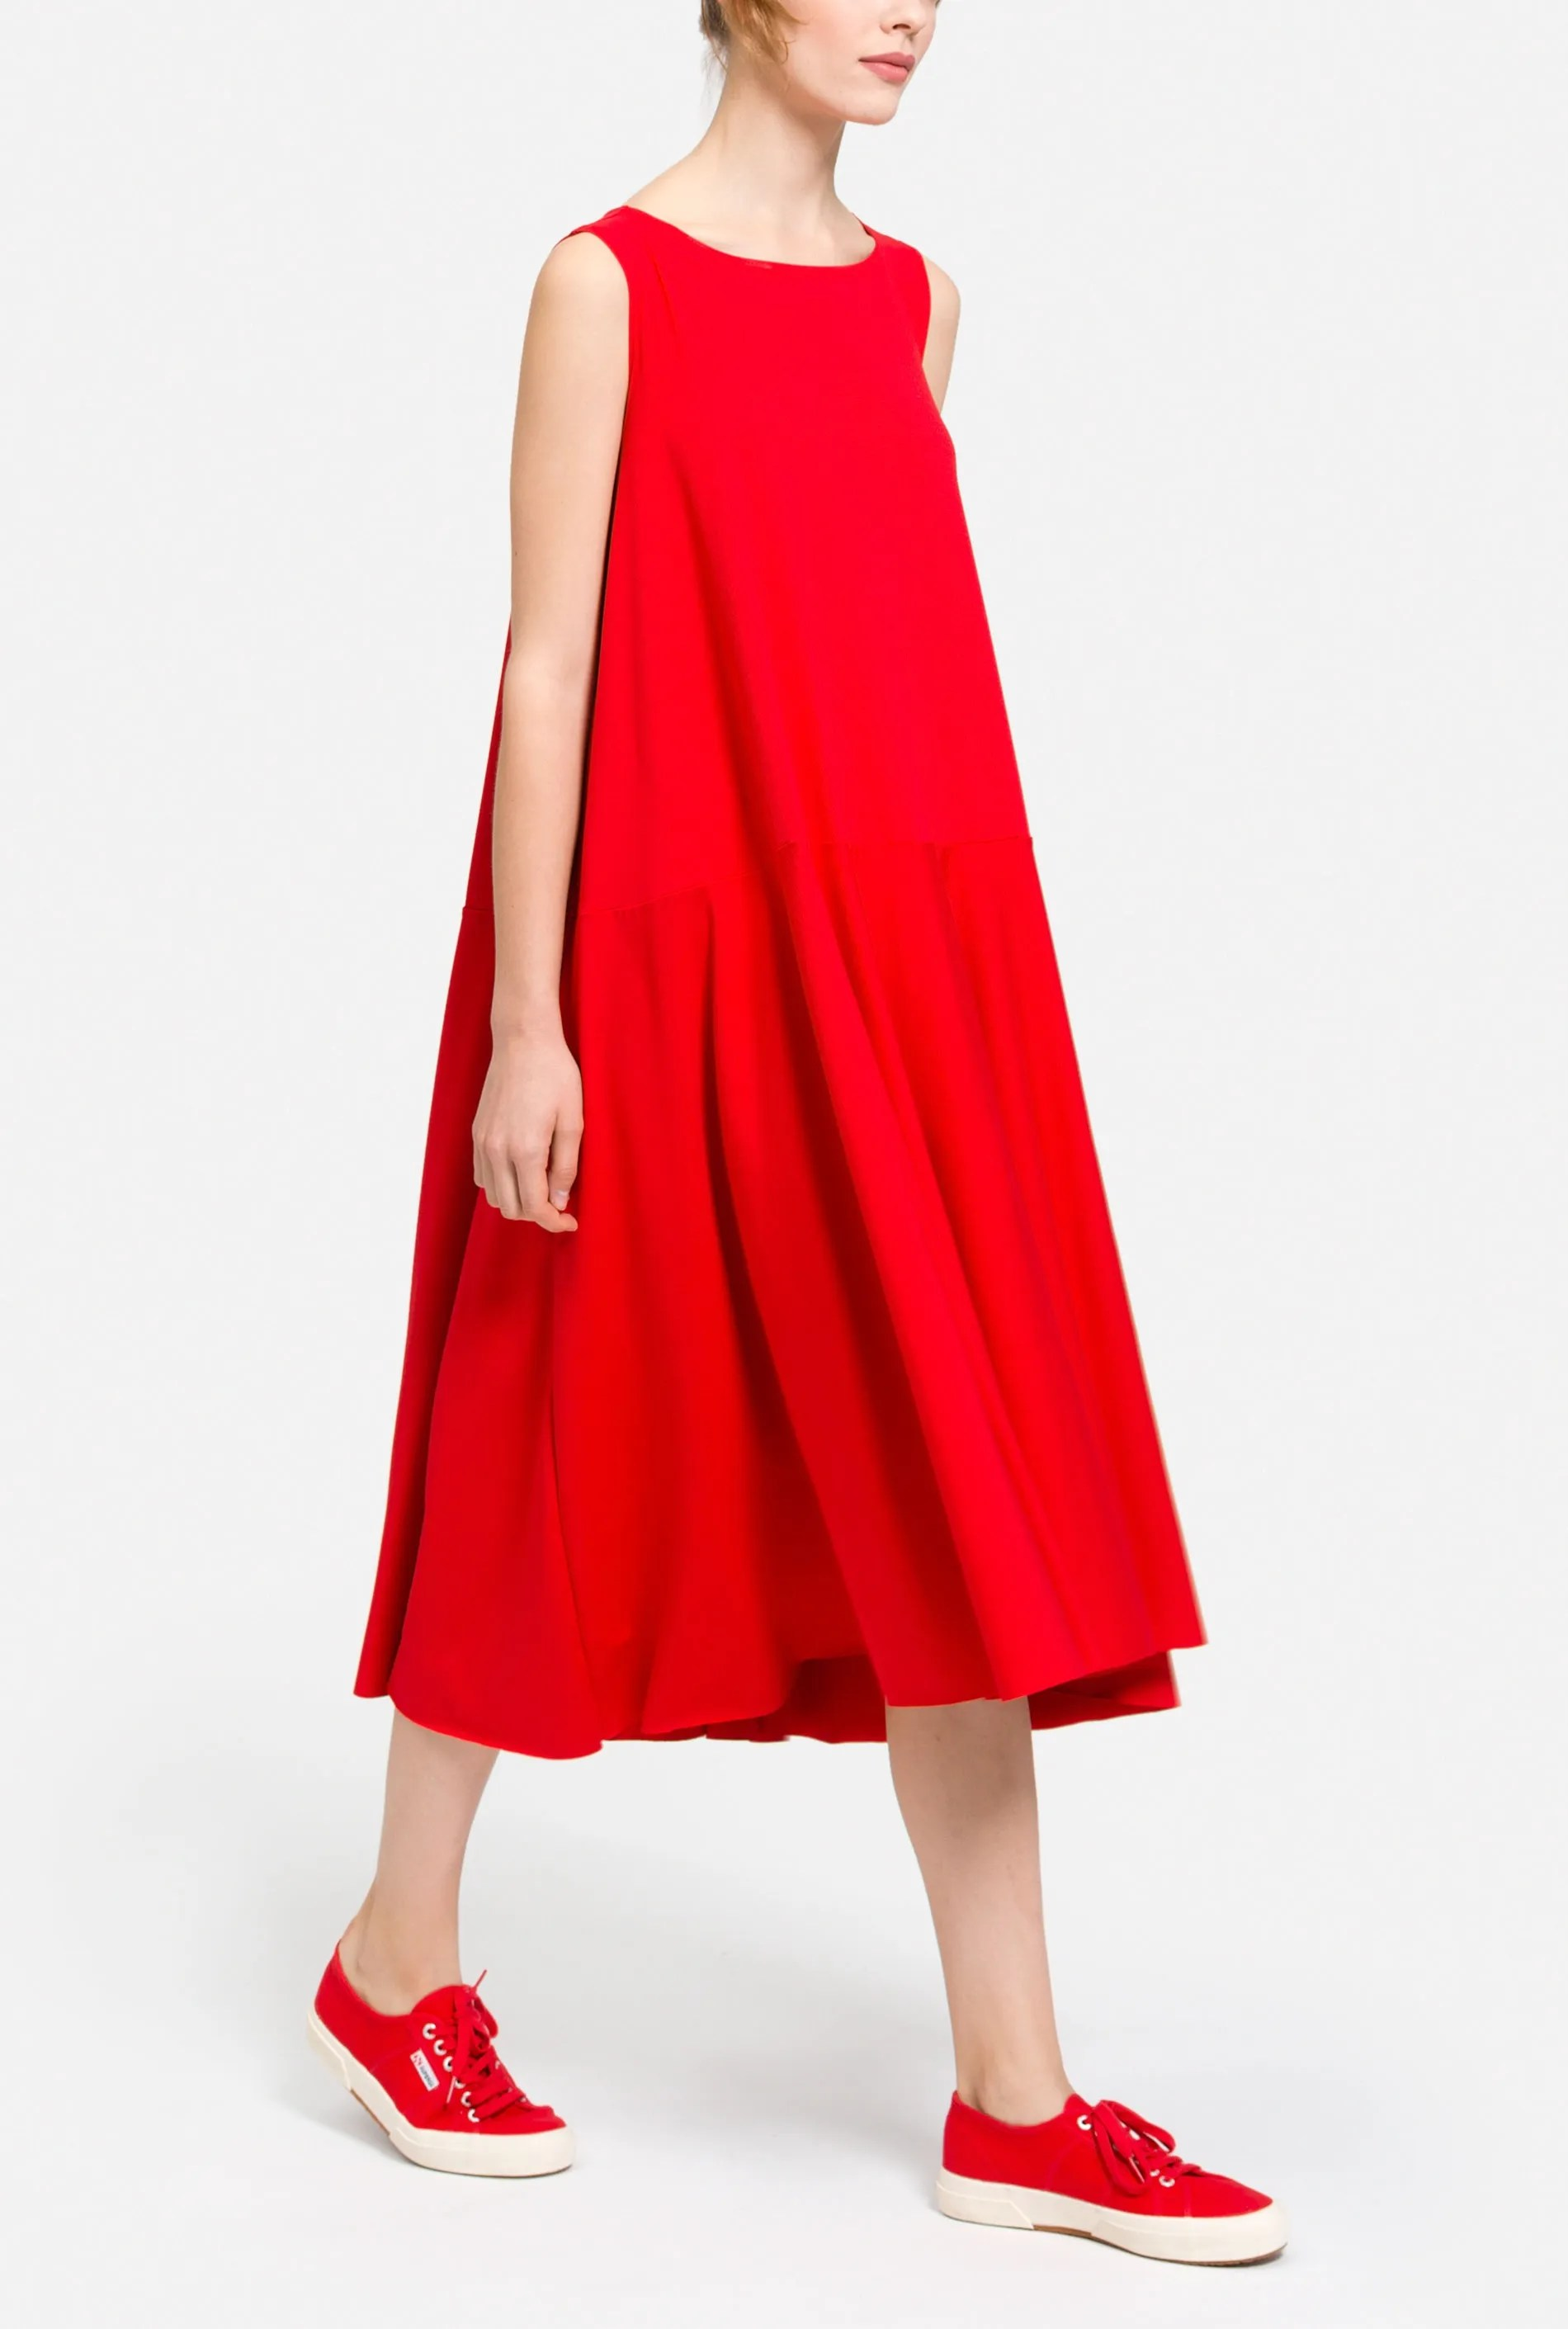 red tent dress